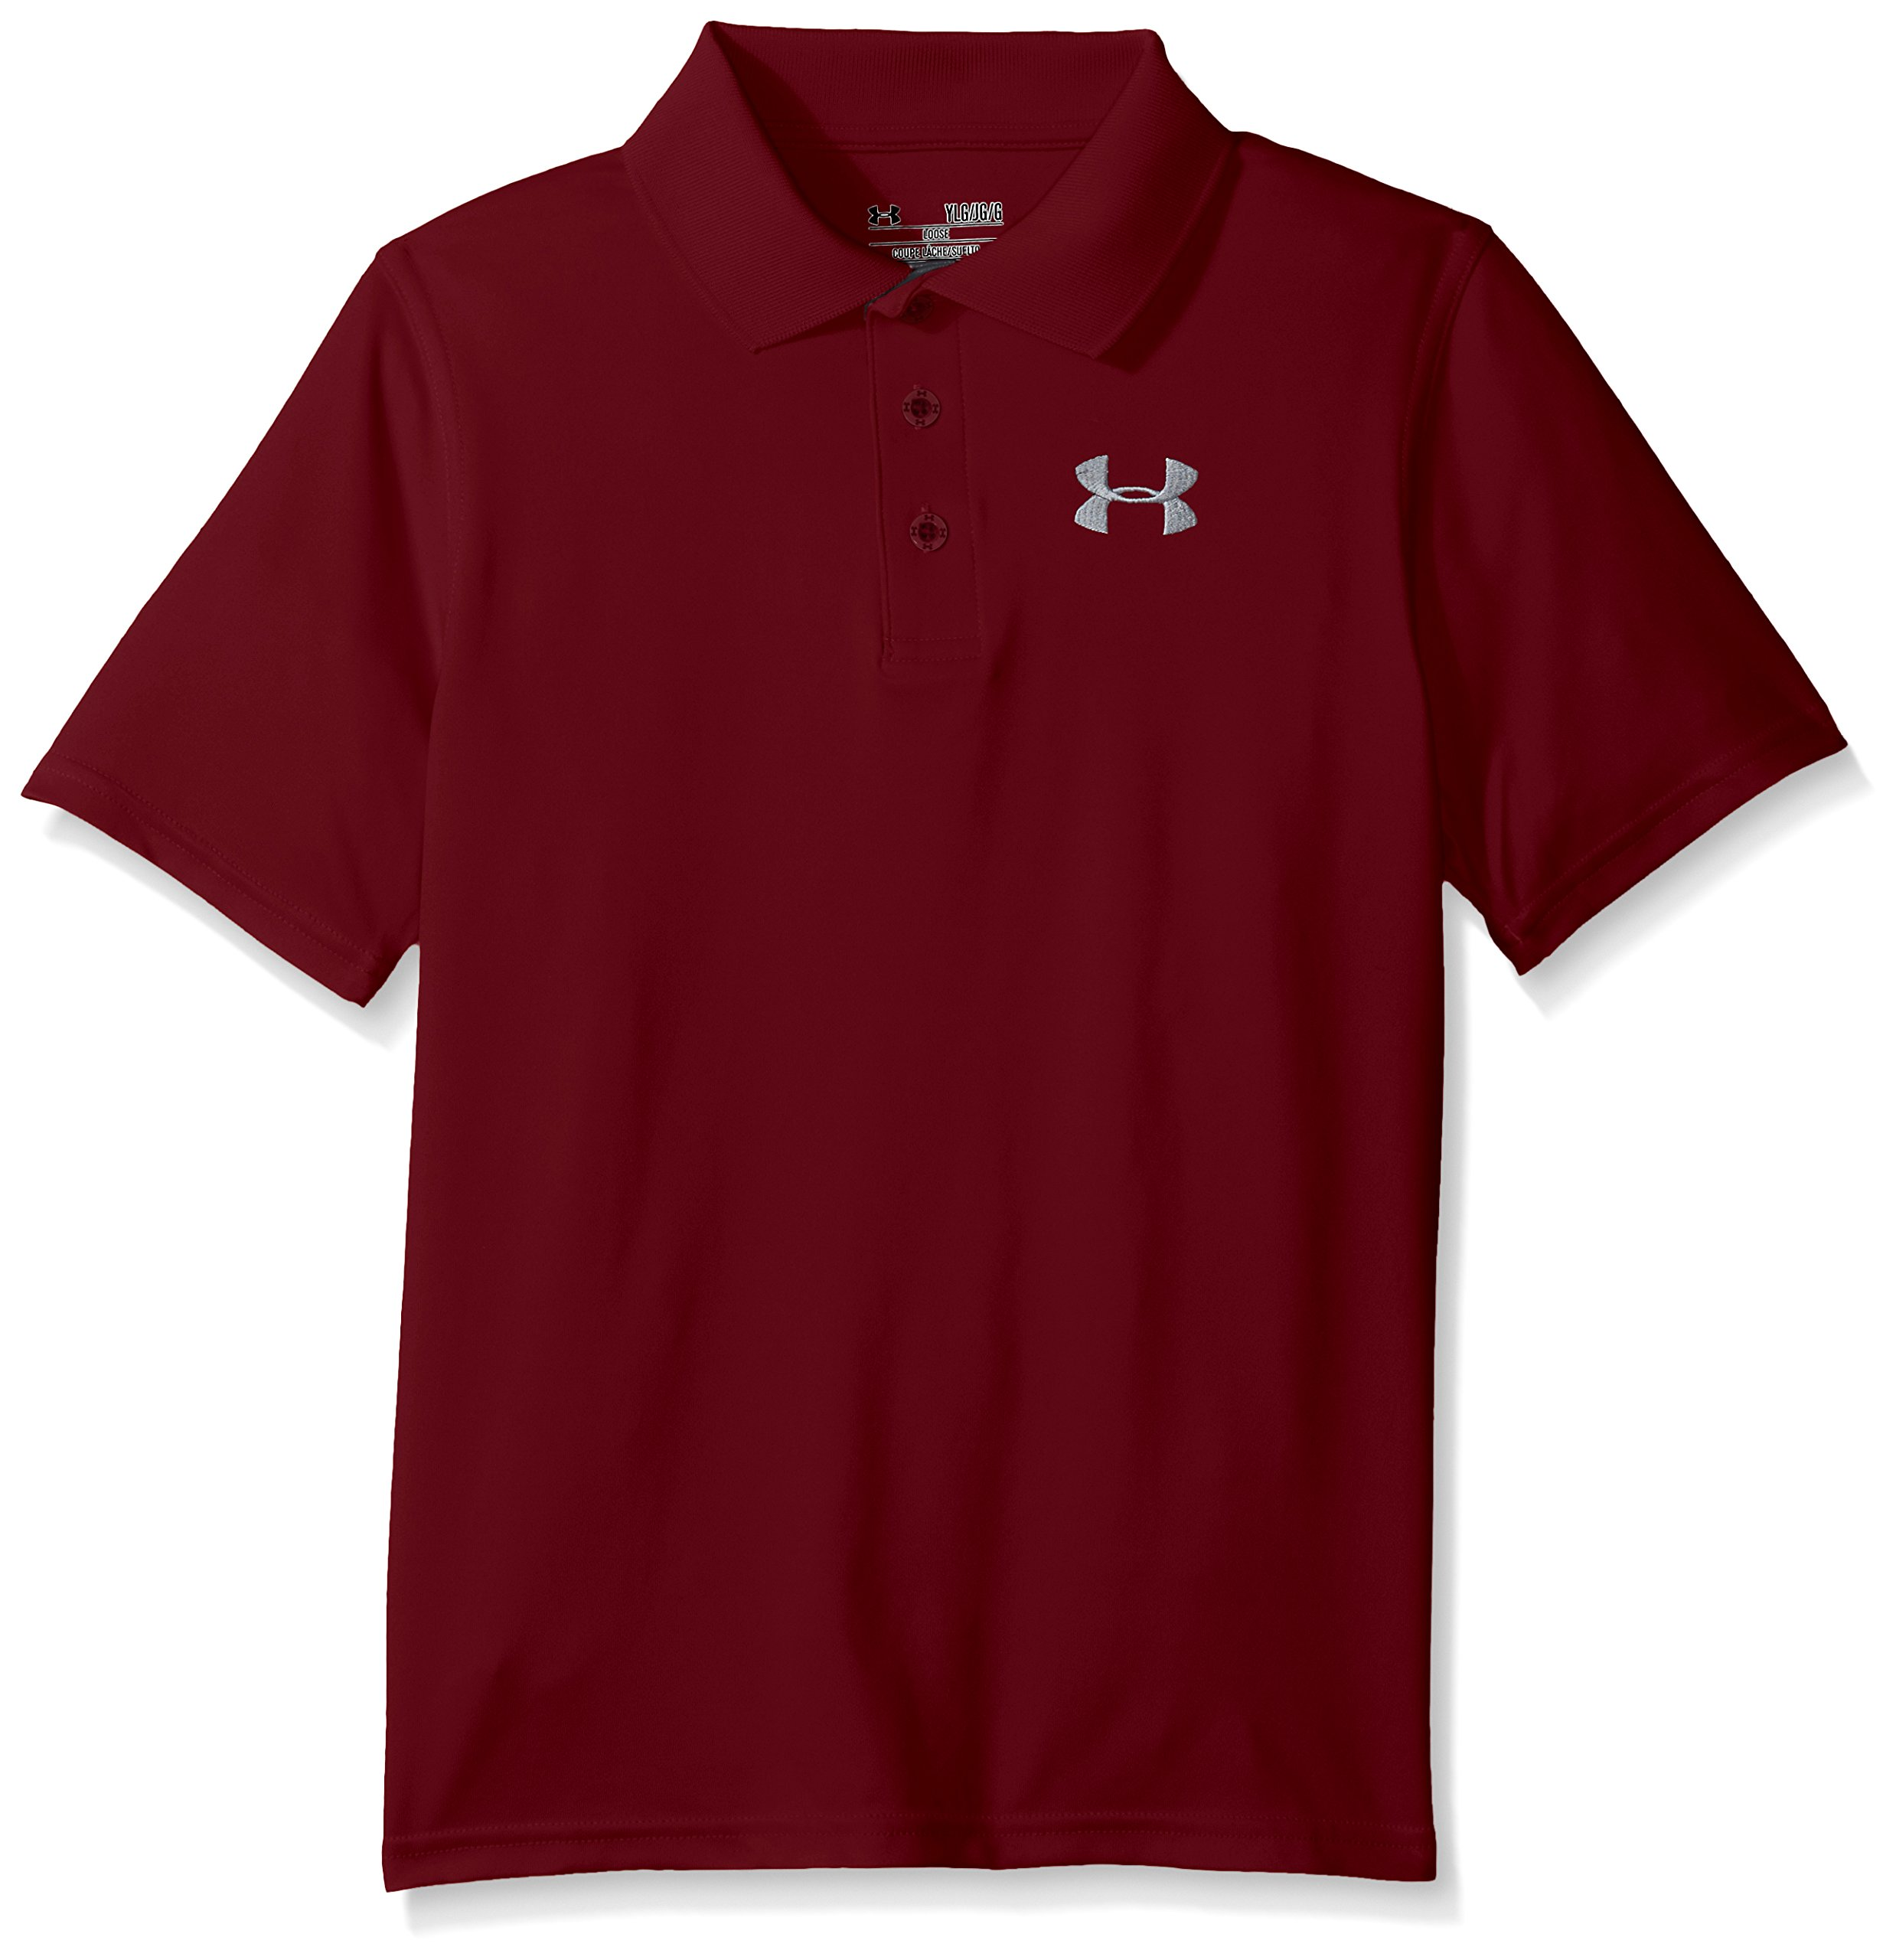 Under Armour Boys' Match Play Polo, Deep Red /Steel, Youth X-Large